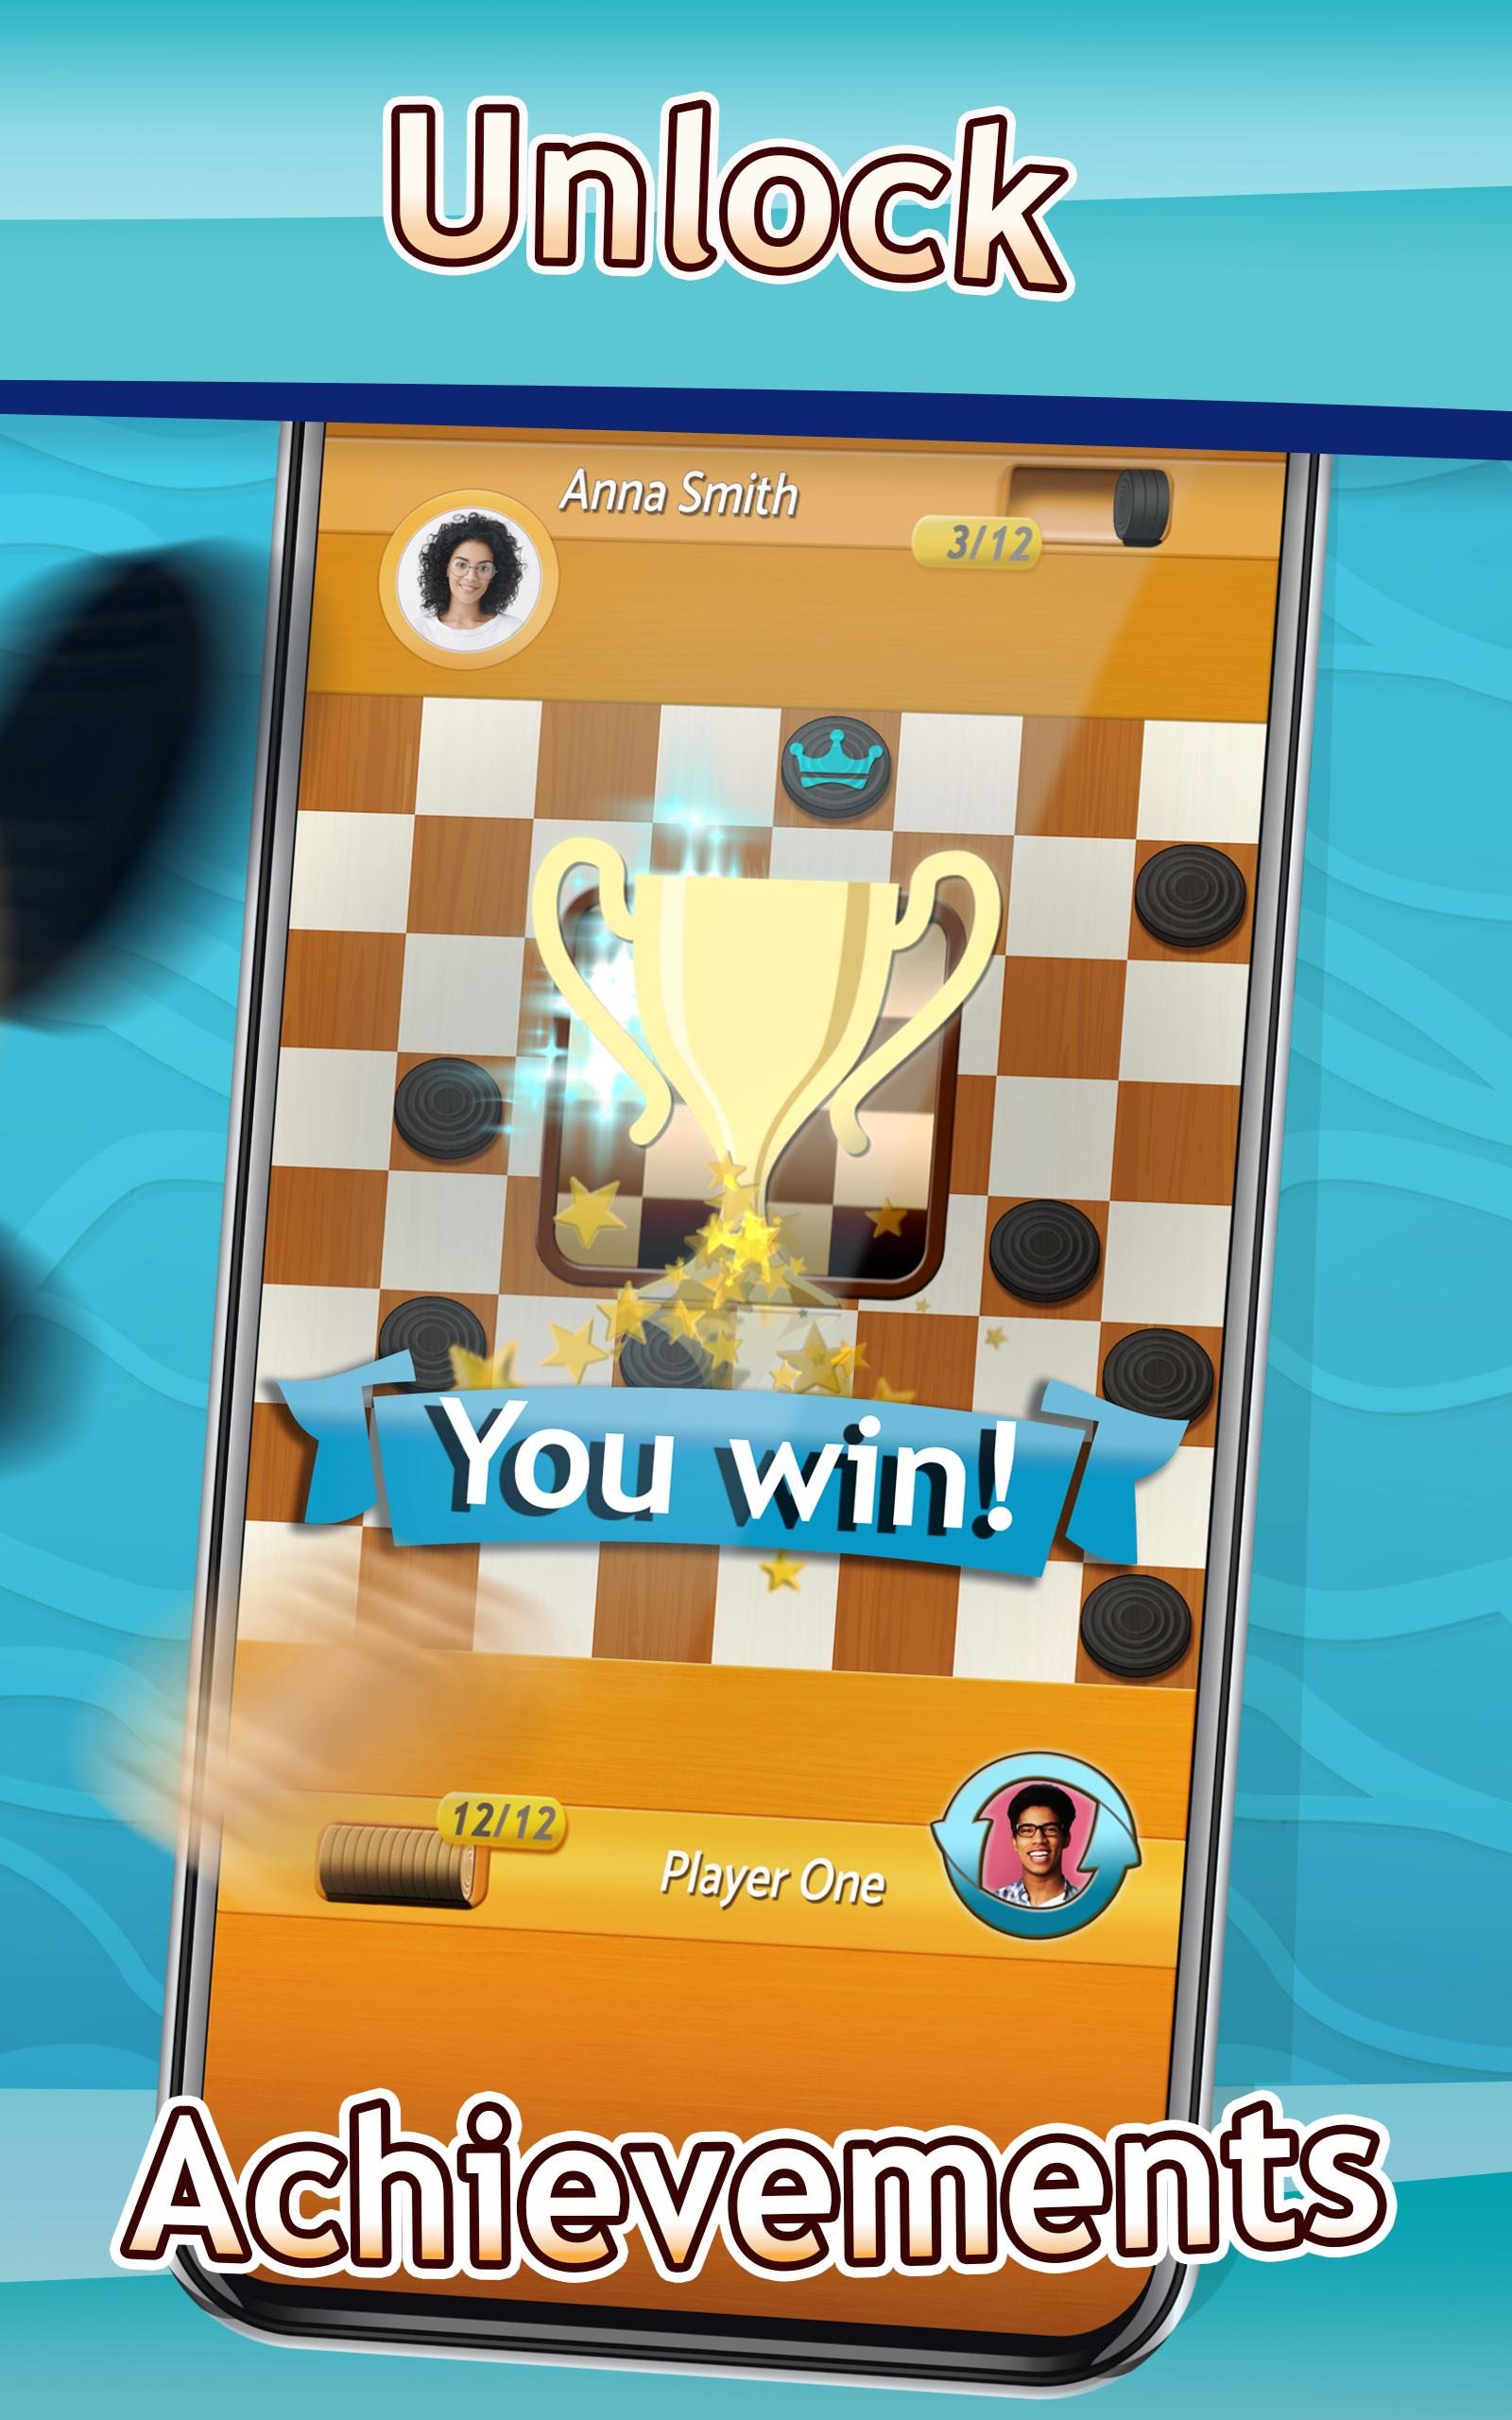 Checkers Draughts Multiplayer Board Game 2.4.4 Screenshot 10